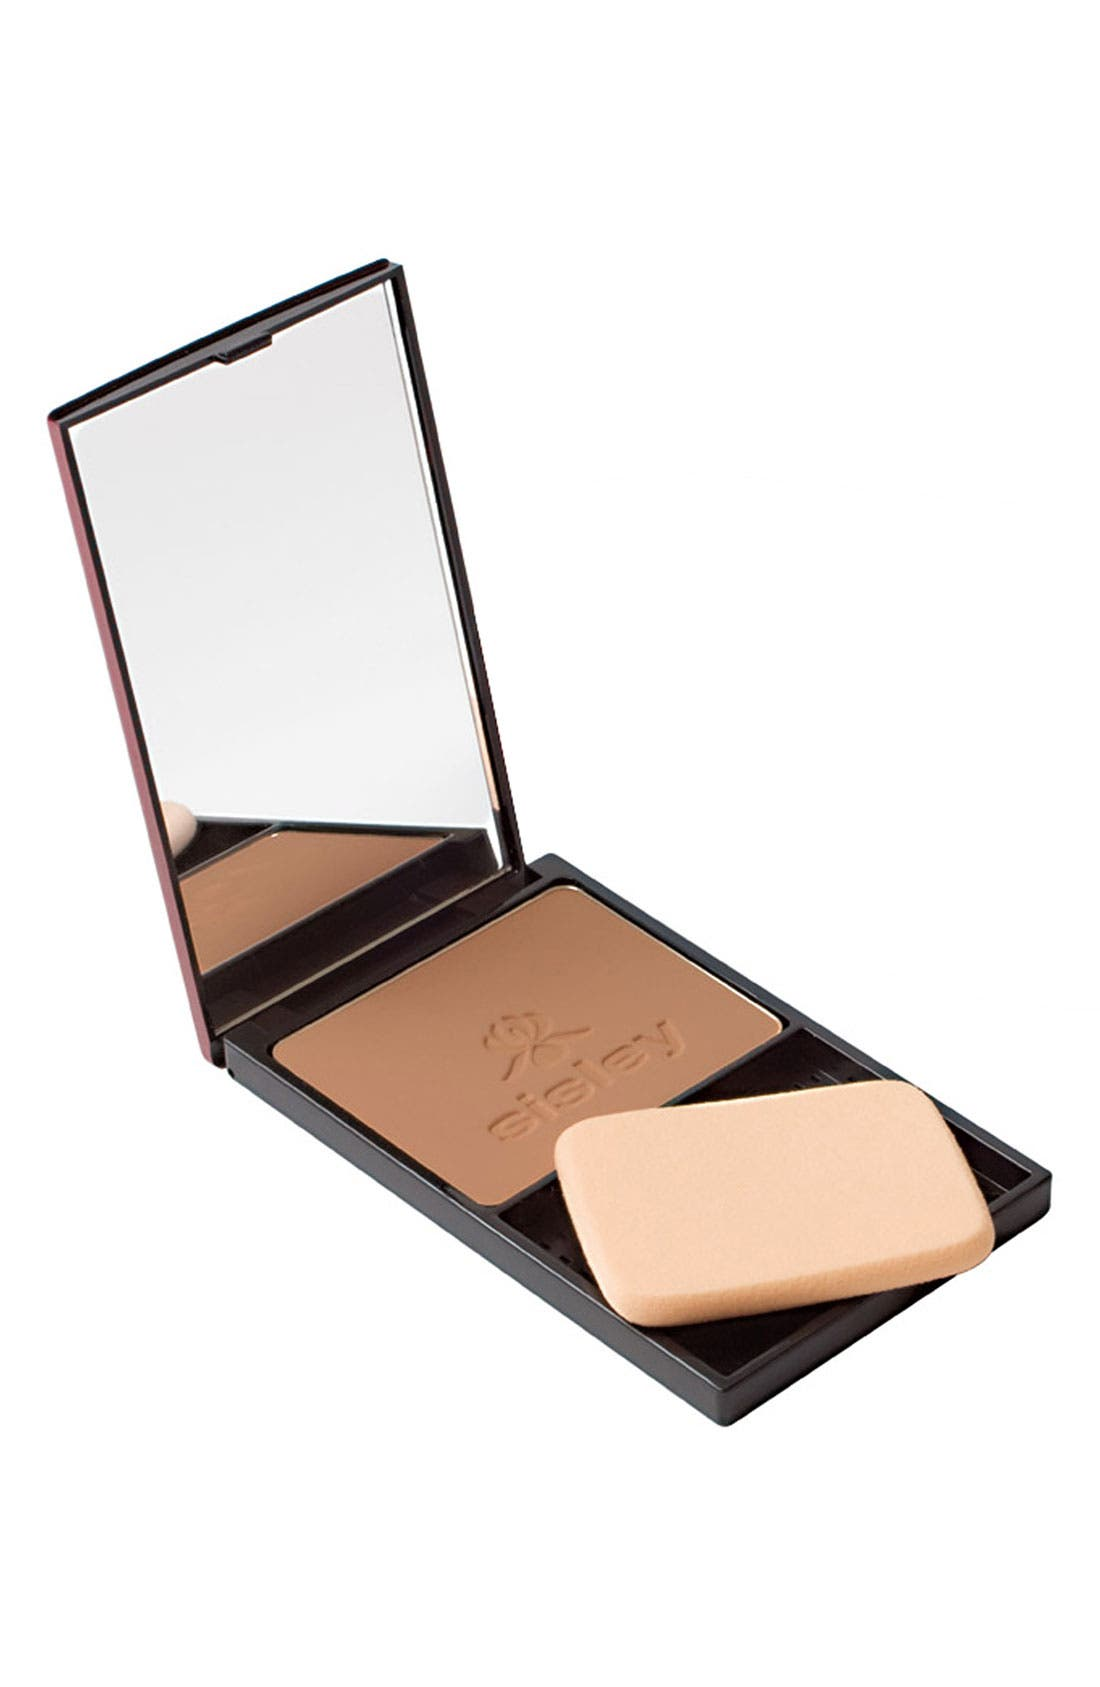 What it is: A powder compact foundation that smoothes and perfects your complexion, giving it an even, natural and matte finish. Who it\\\'s for: All skin types. What it does: Its silky, airy powder texture blends with your skin, creating a long-lasting, velvety, second-skin effect for a complexion that is flawless and smooth. The powder is also extremely adherent for optimal staying power and it applies easily, allowing for adjustable coverage.